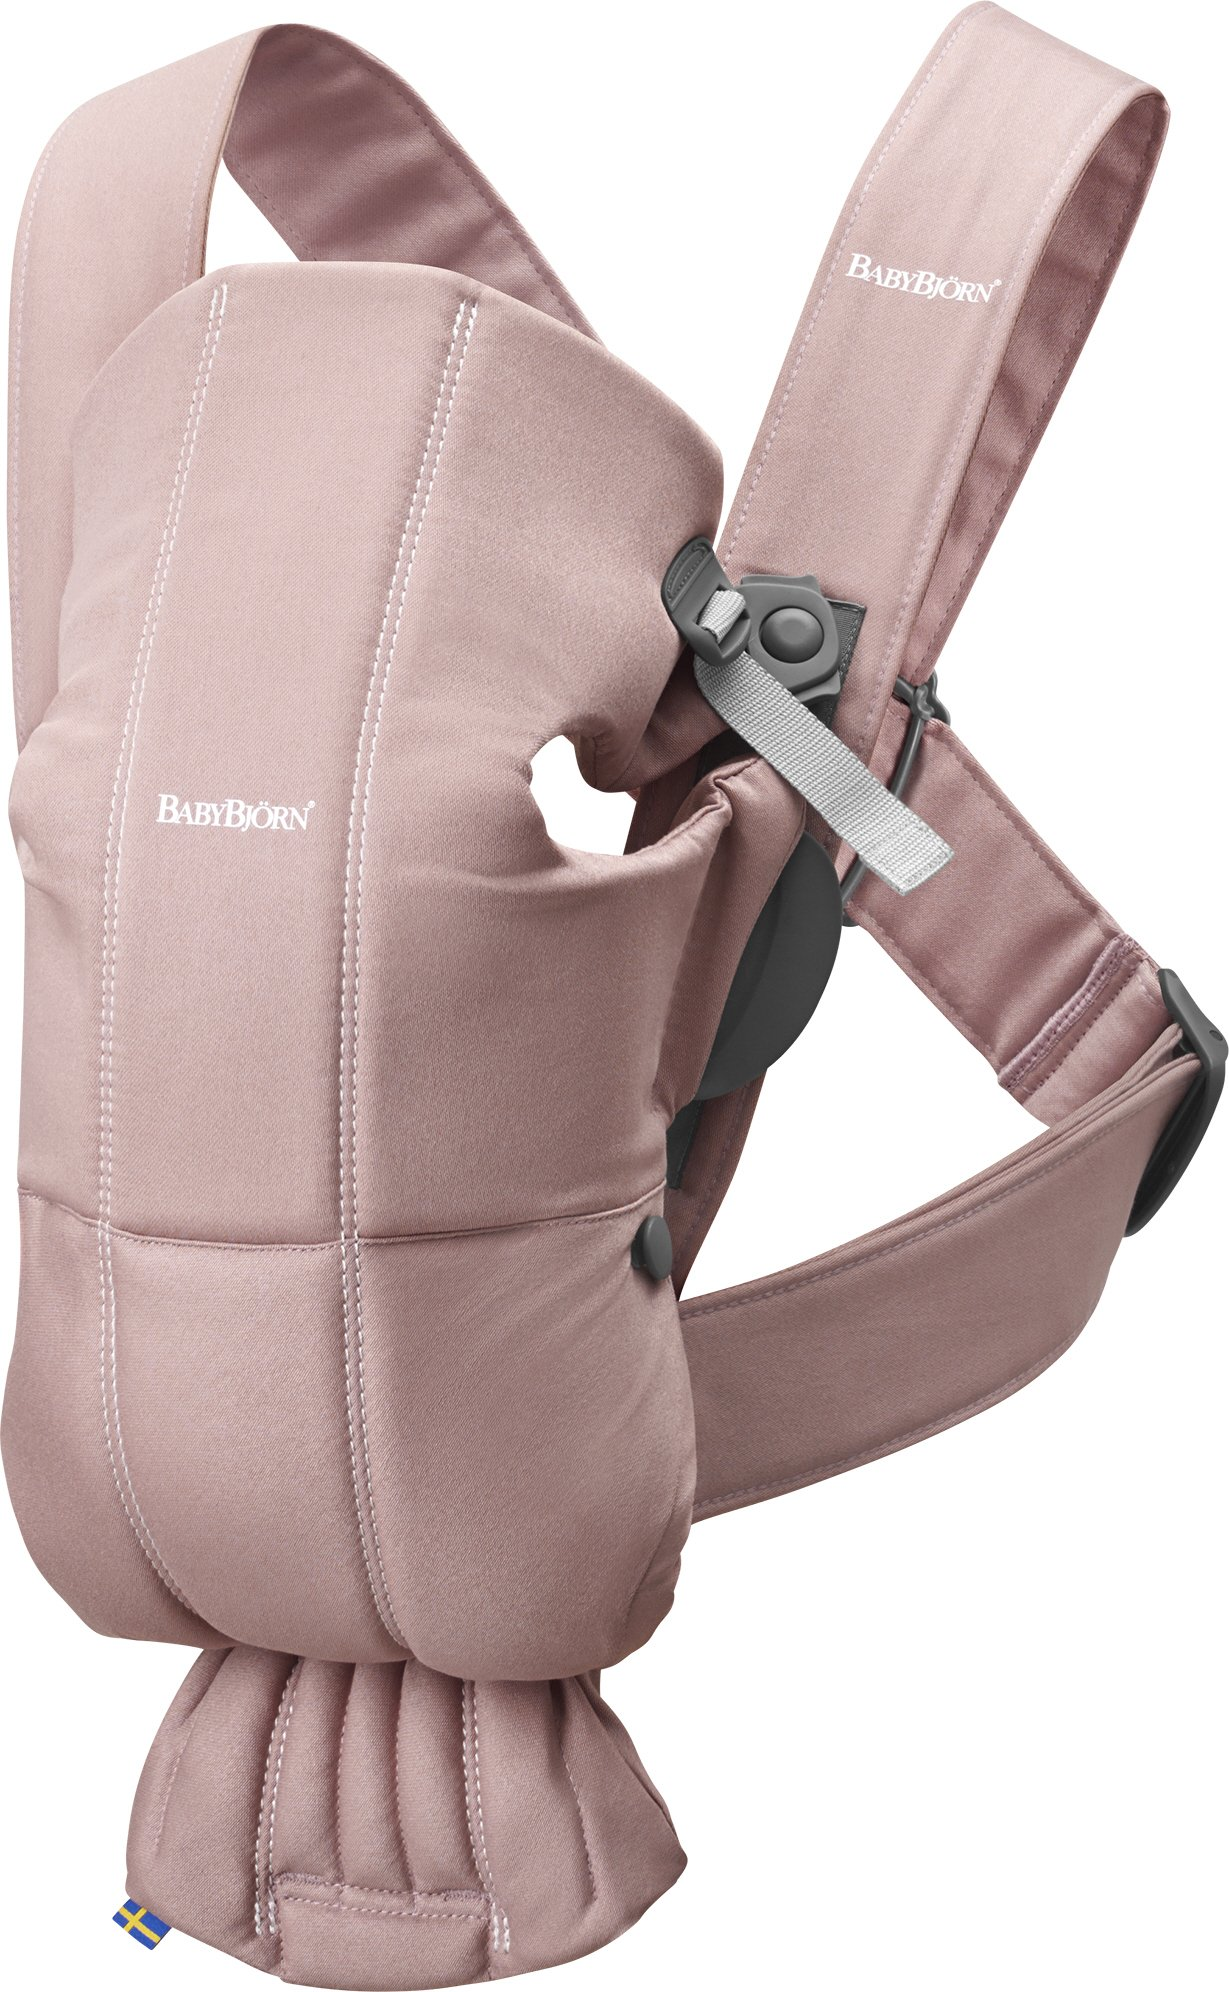 BABYBJORN Baby Carrier Mini in Cotton, Dusty Pink